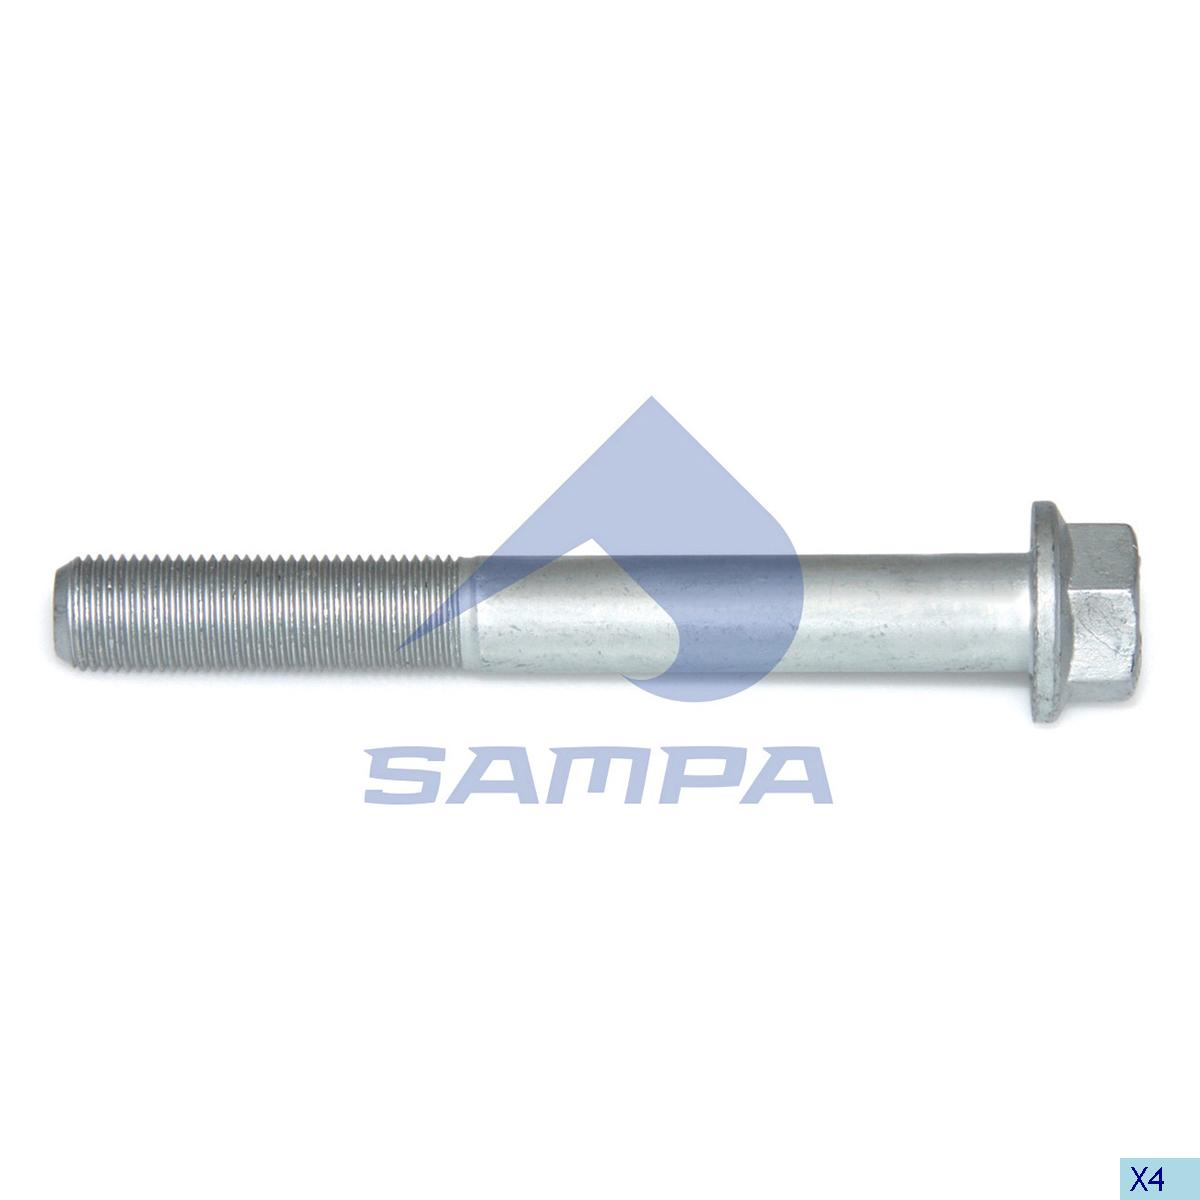 Screw, Shock Absorber, Mercedes, Suspension